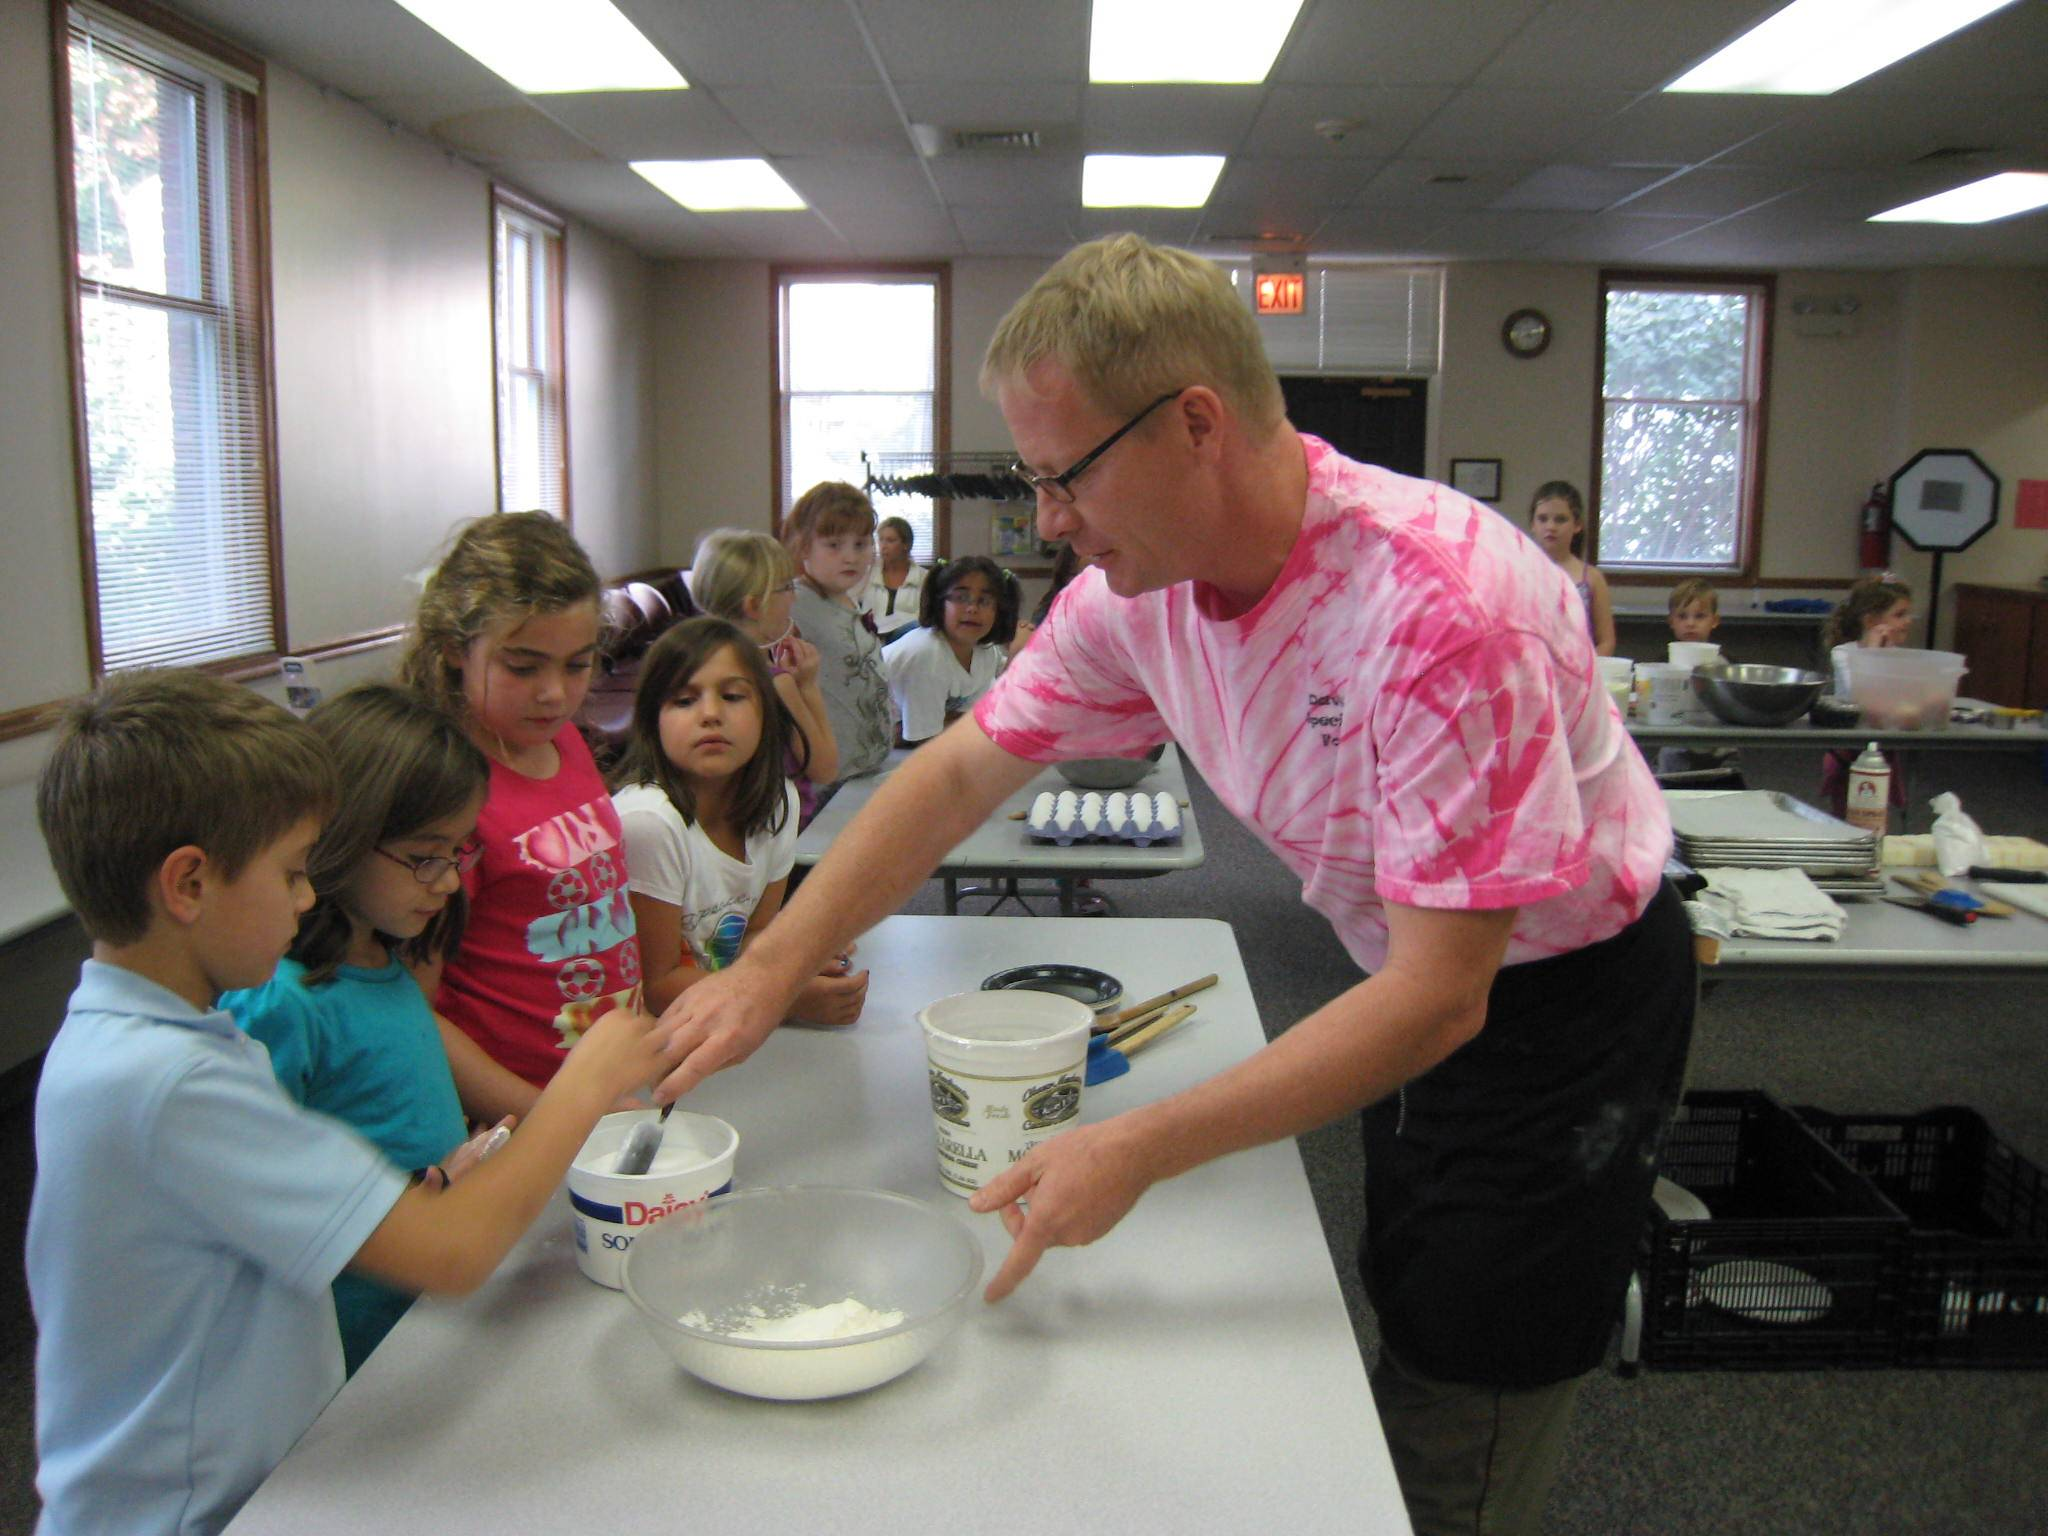 Cooking with Chef Dave is a fun and hands on experience.